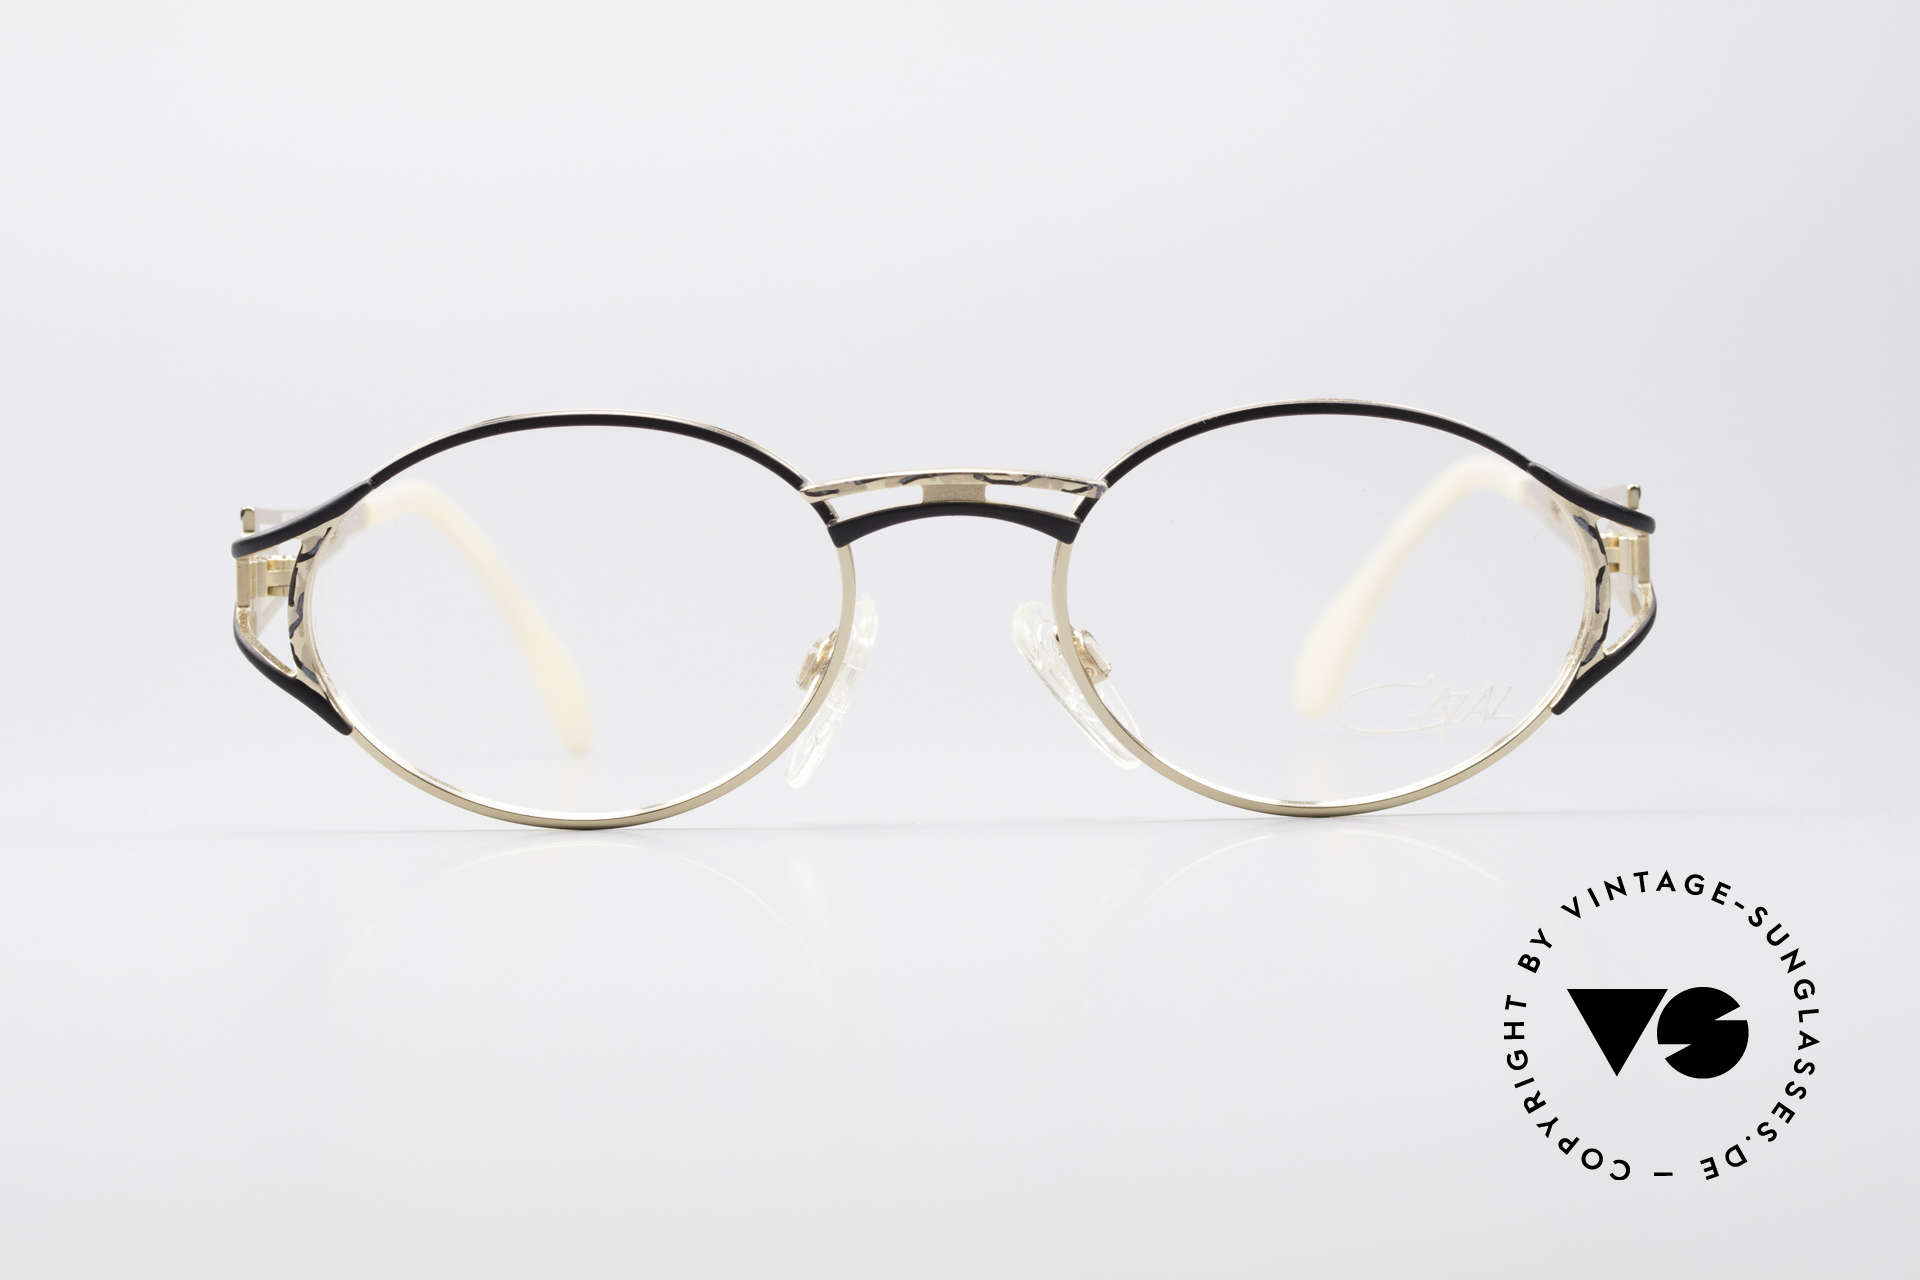 Cazal 285 Oval Round Vintage Glasses, delicate design full of verve and in top quality, Made for Women